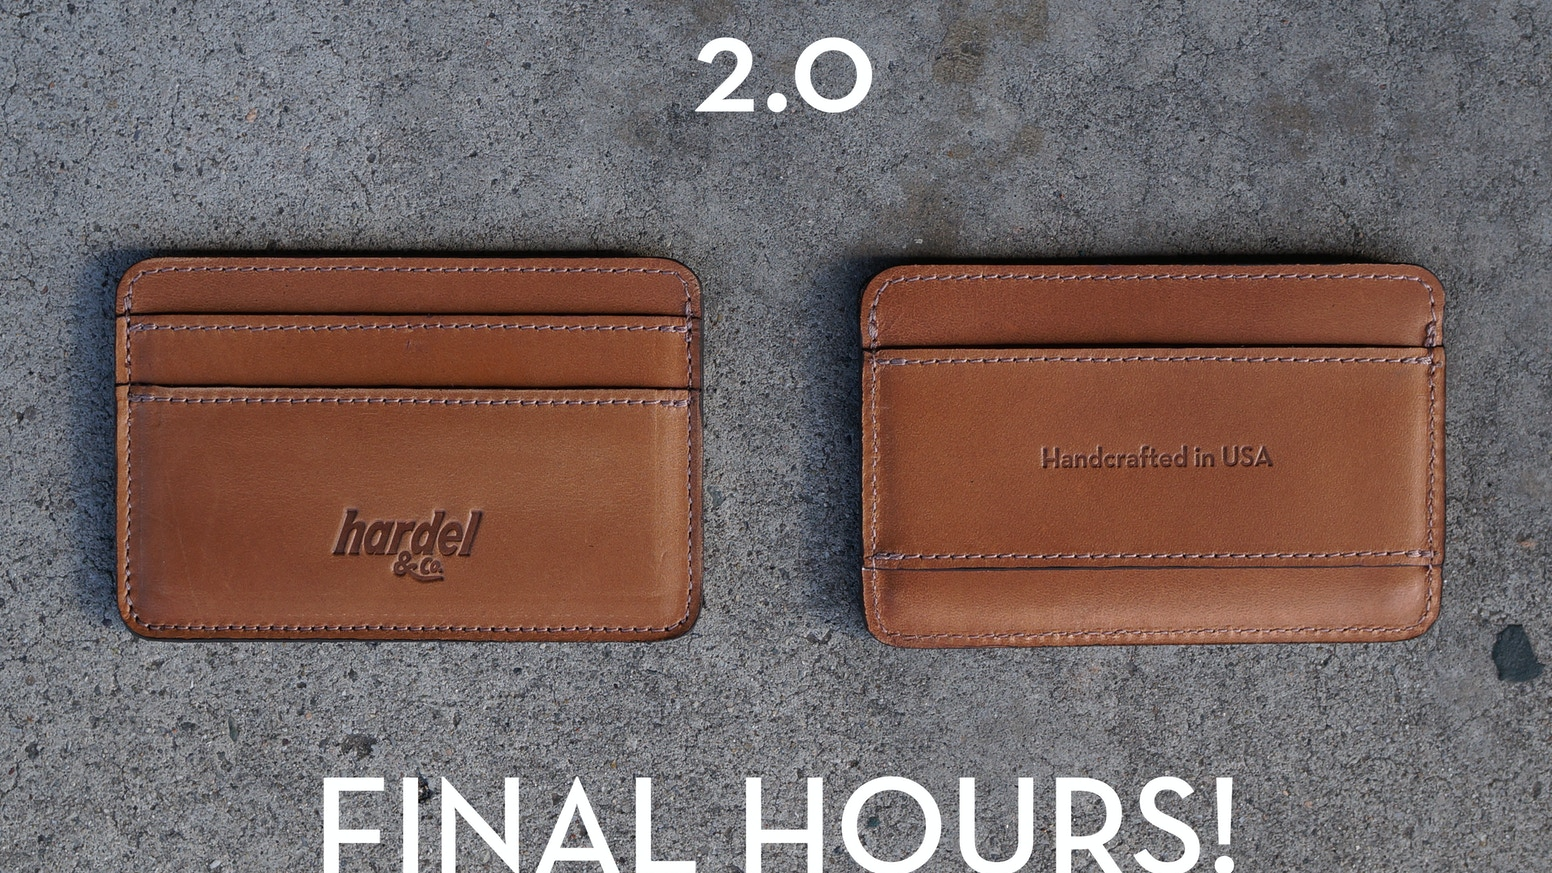 OUR BEST WALLET YET... Presenting the meticulously PERFECTED, HANDCRAFTED 2.0 by Hardel & CO. Made in USA